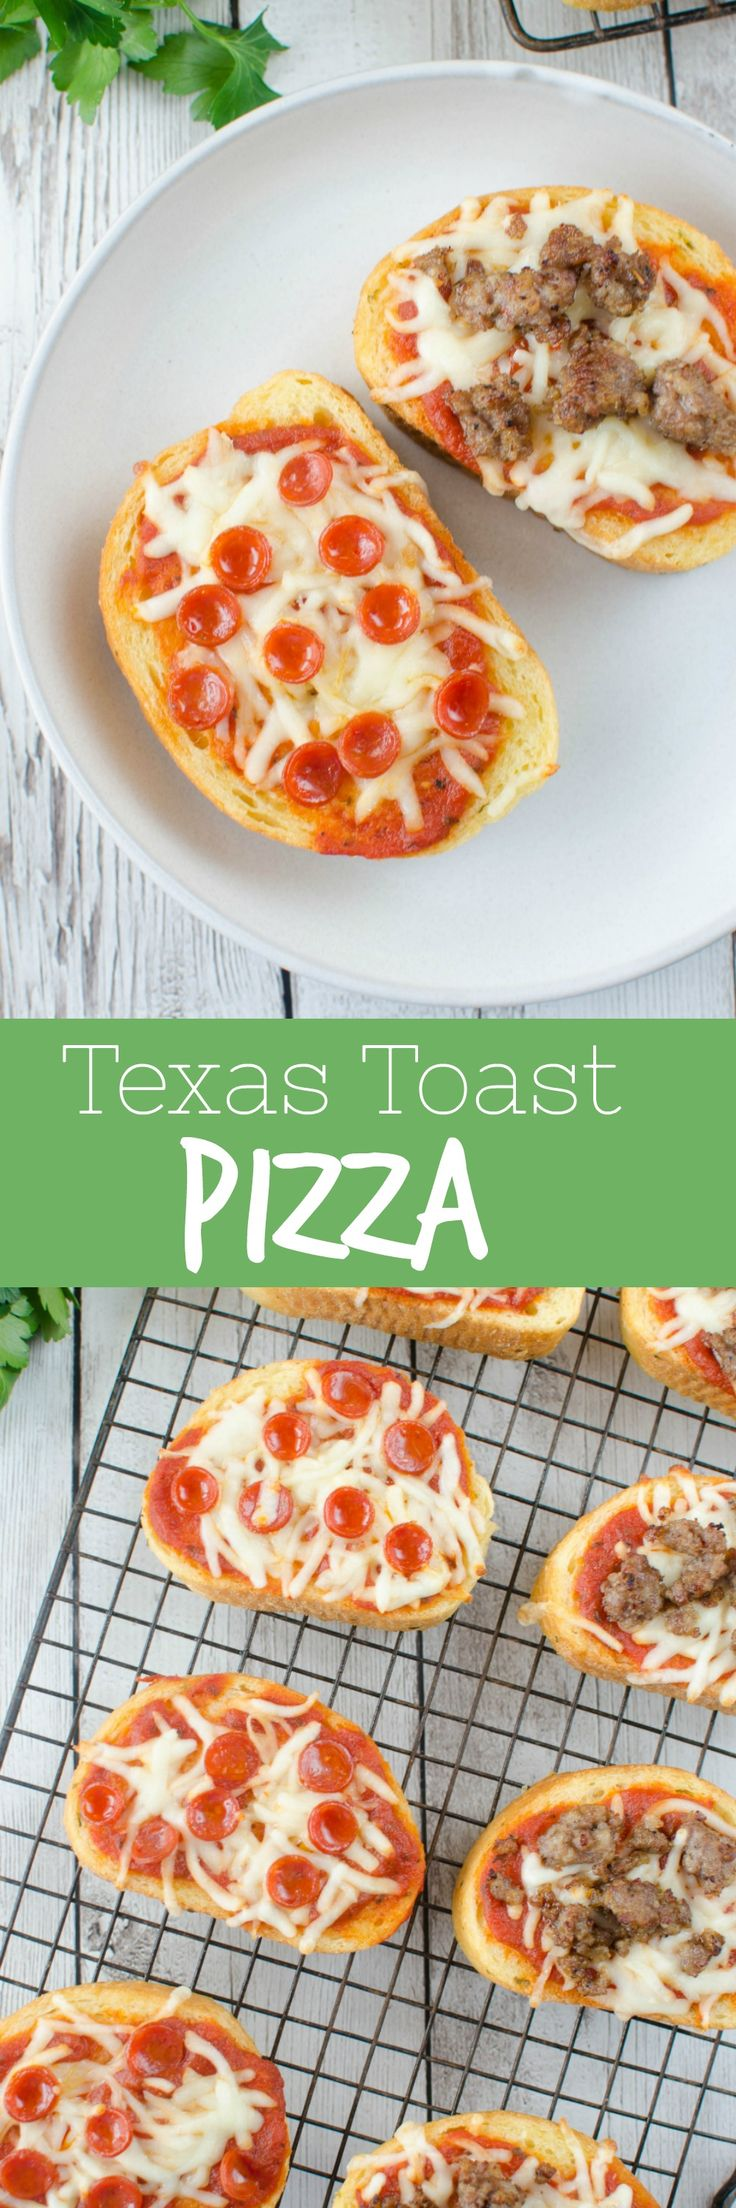 Texas Toast Pizza - quick and easy way to to do pizza night! Garlic Texas toast with pizza sauce, cheese, and whatever toppings you love! Ready in less than 10 minutes and a kid favorite!